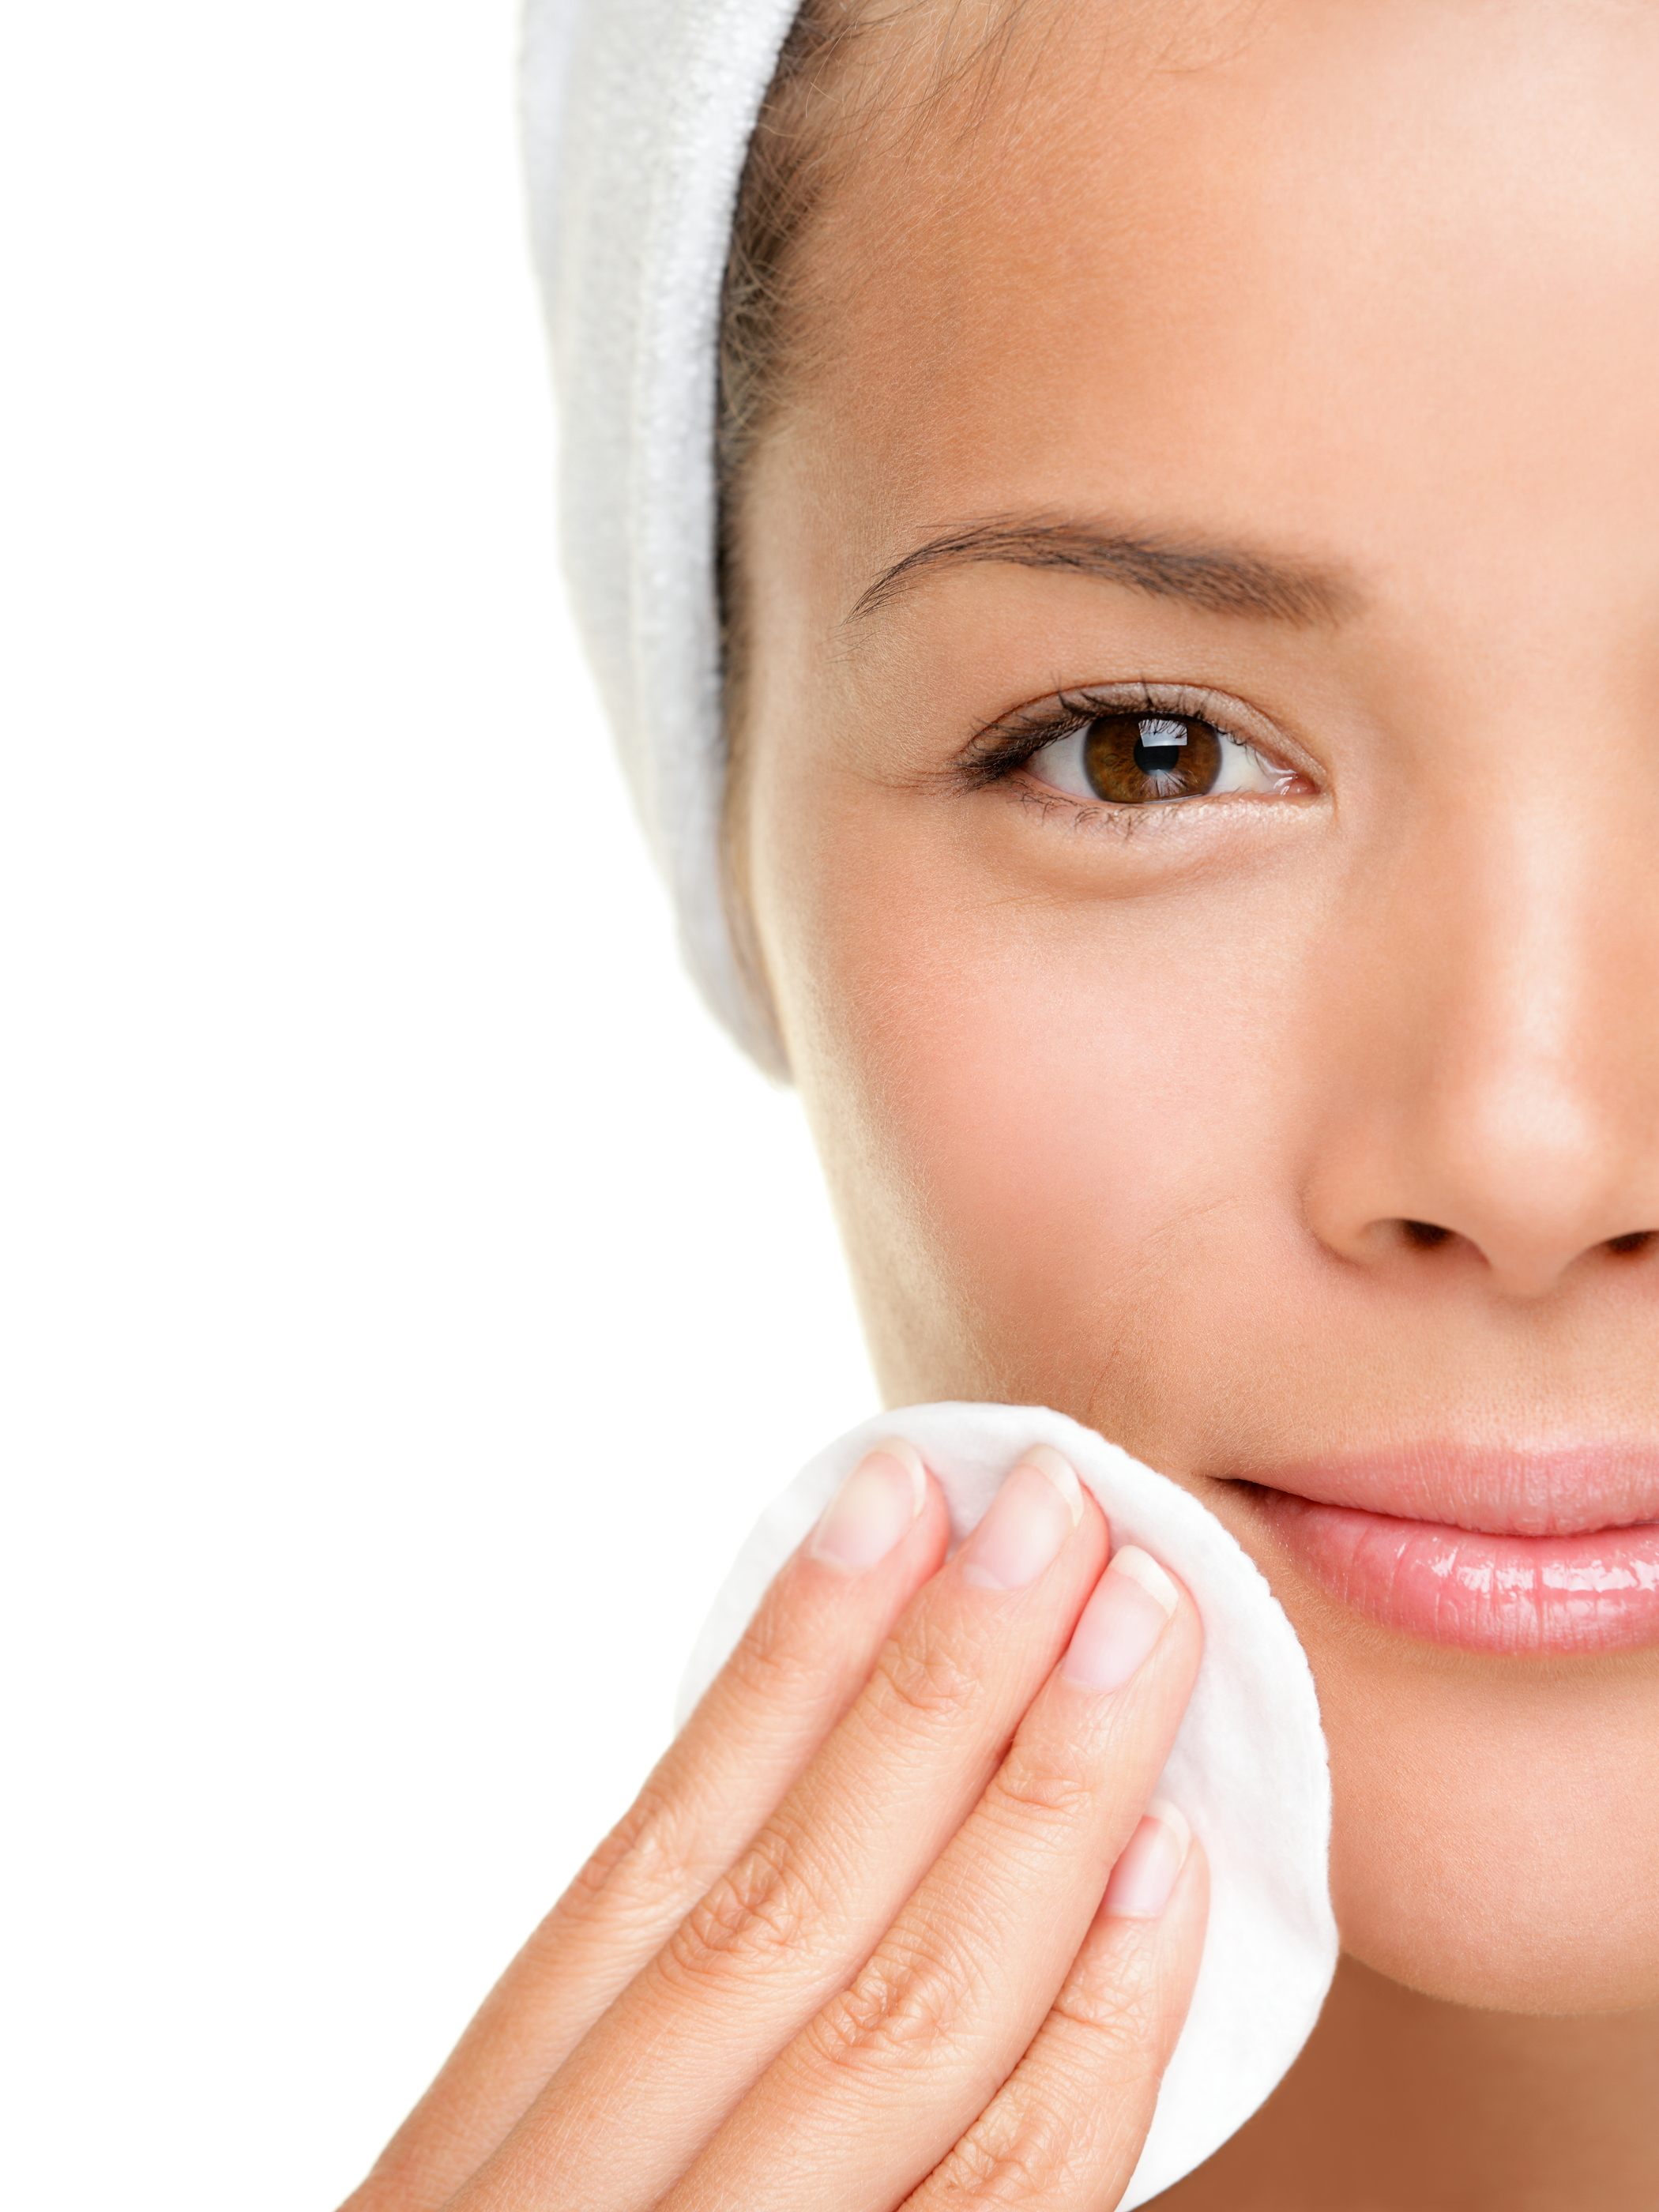 How to Get a Personalized Skin Care Regimen